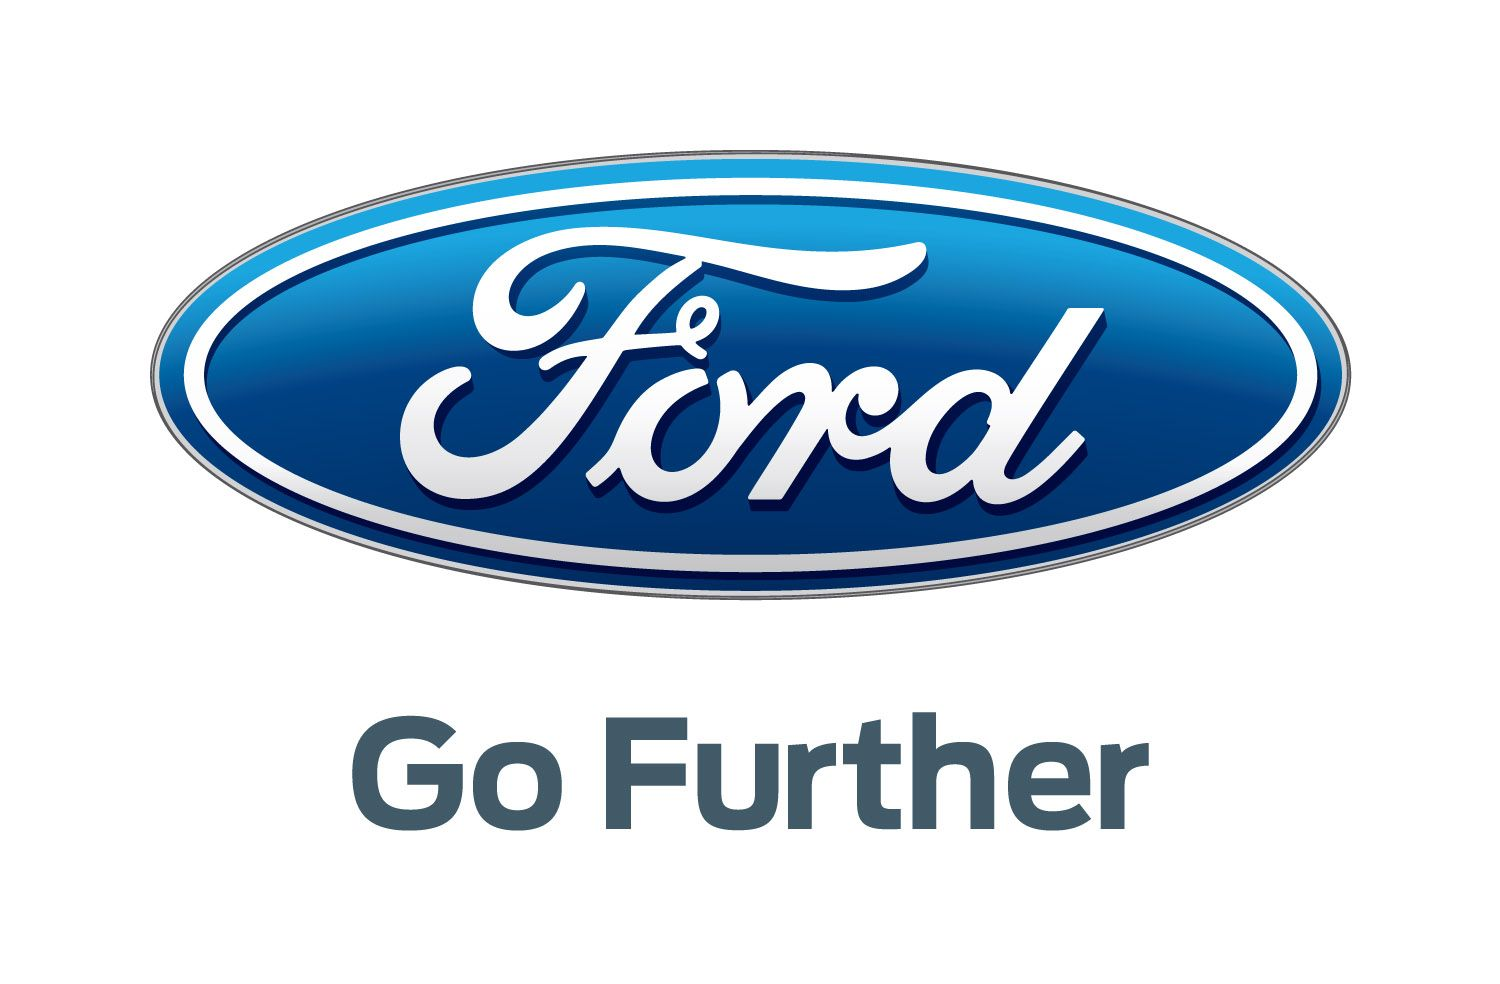 ford slogan | Hyundi | Pinterest | Cars, Chevy and Trucks